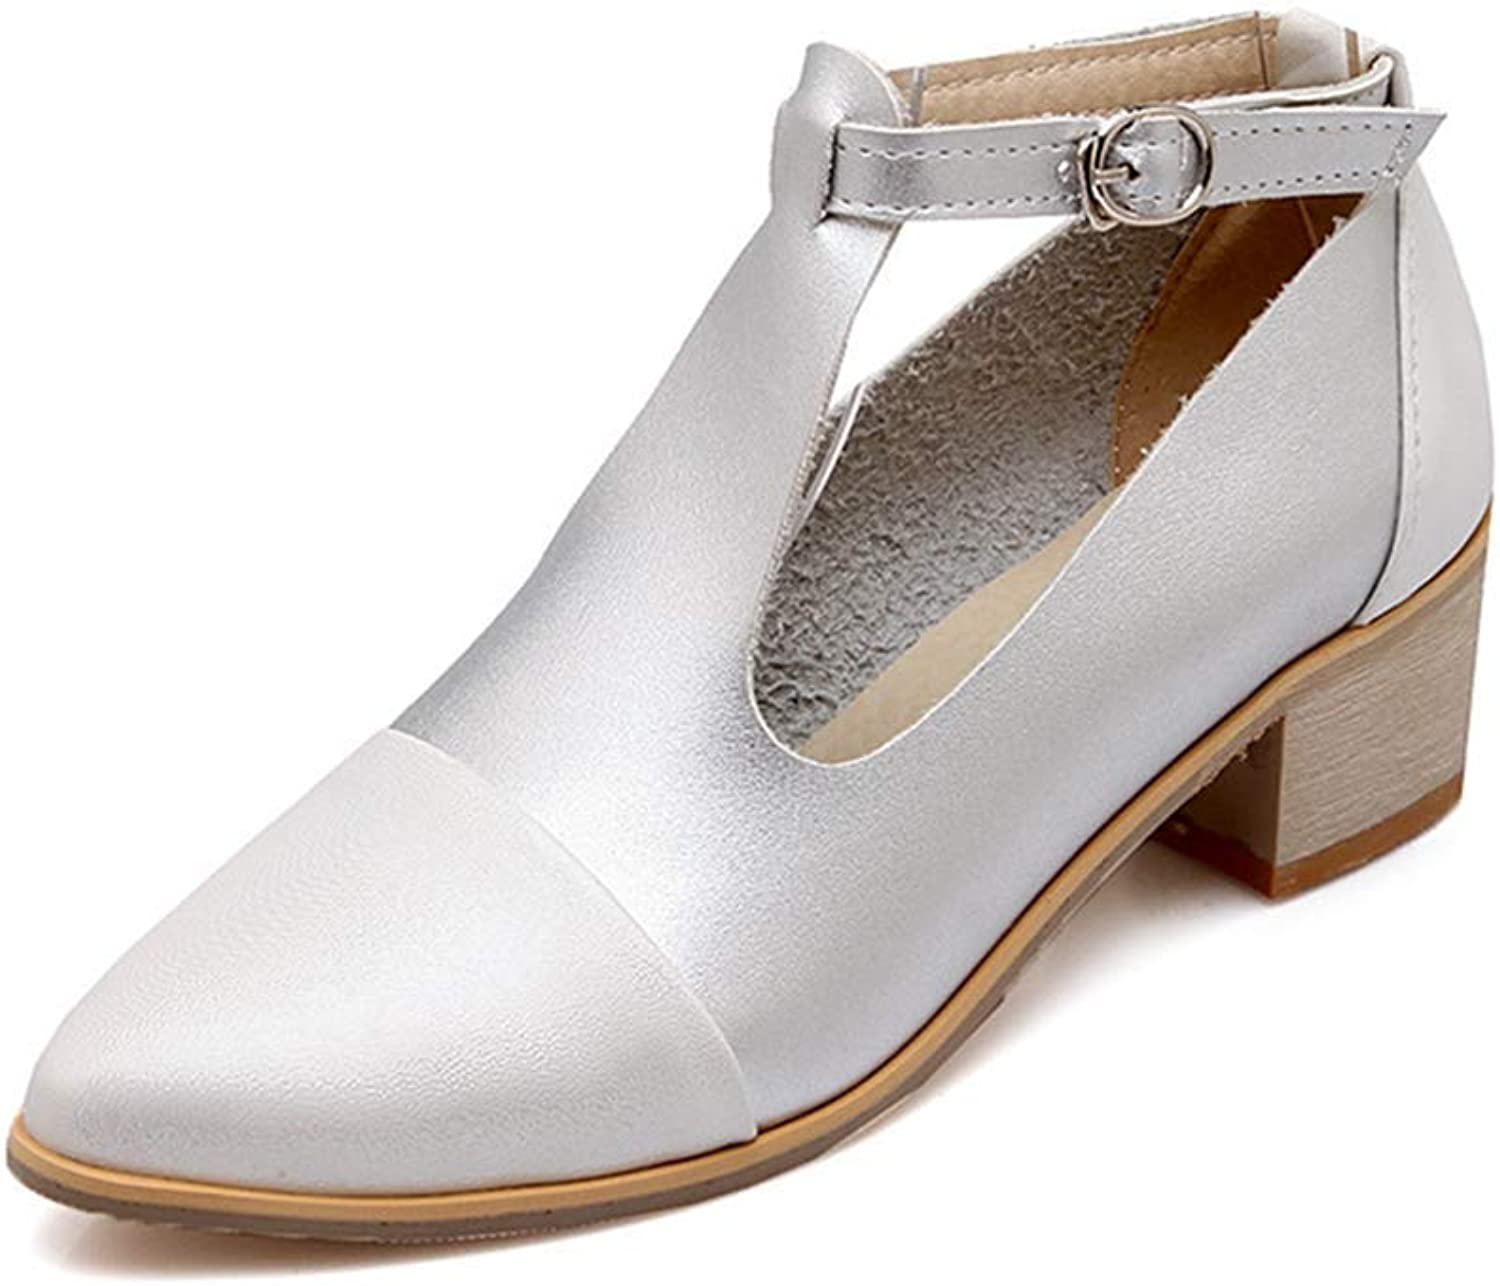 Elsa Wilcox Women Mary Jane Platform Buckle Strap Chunky Mid Heel Dress shoes Pointed Toe T-Strap Oxford Pumps